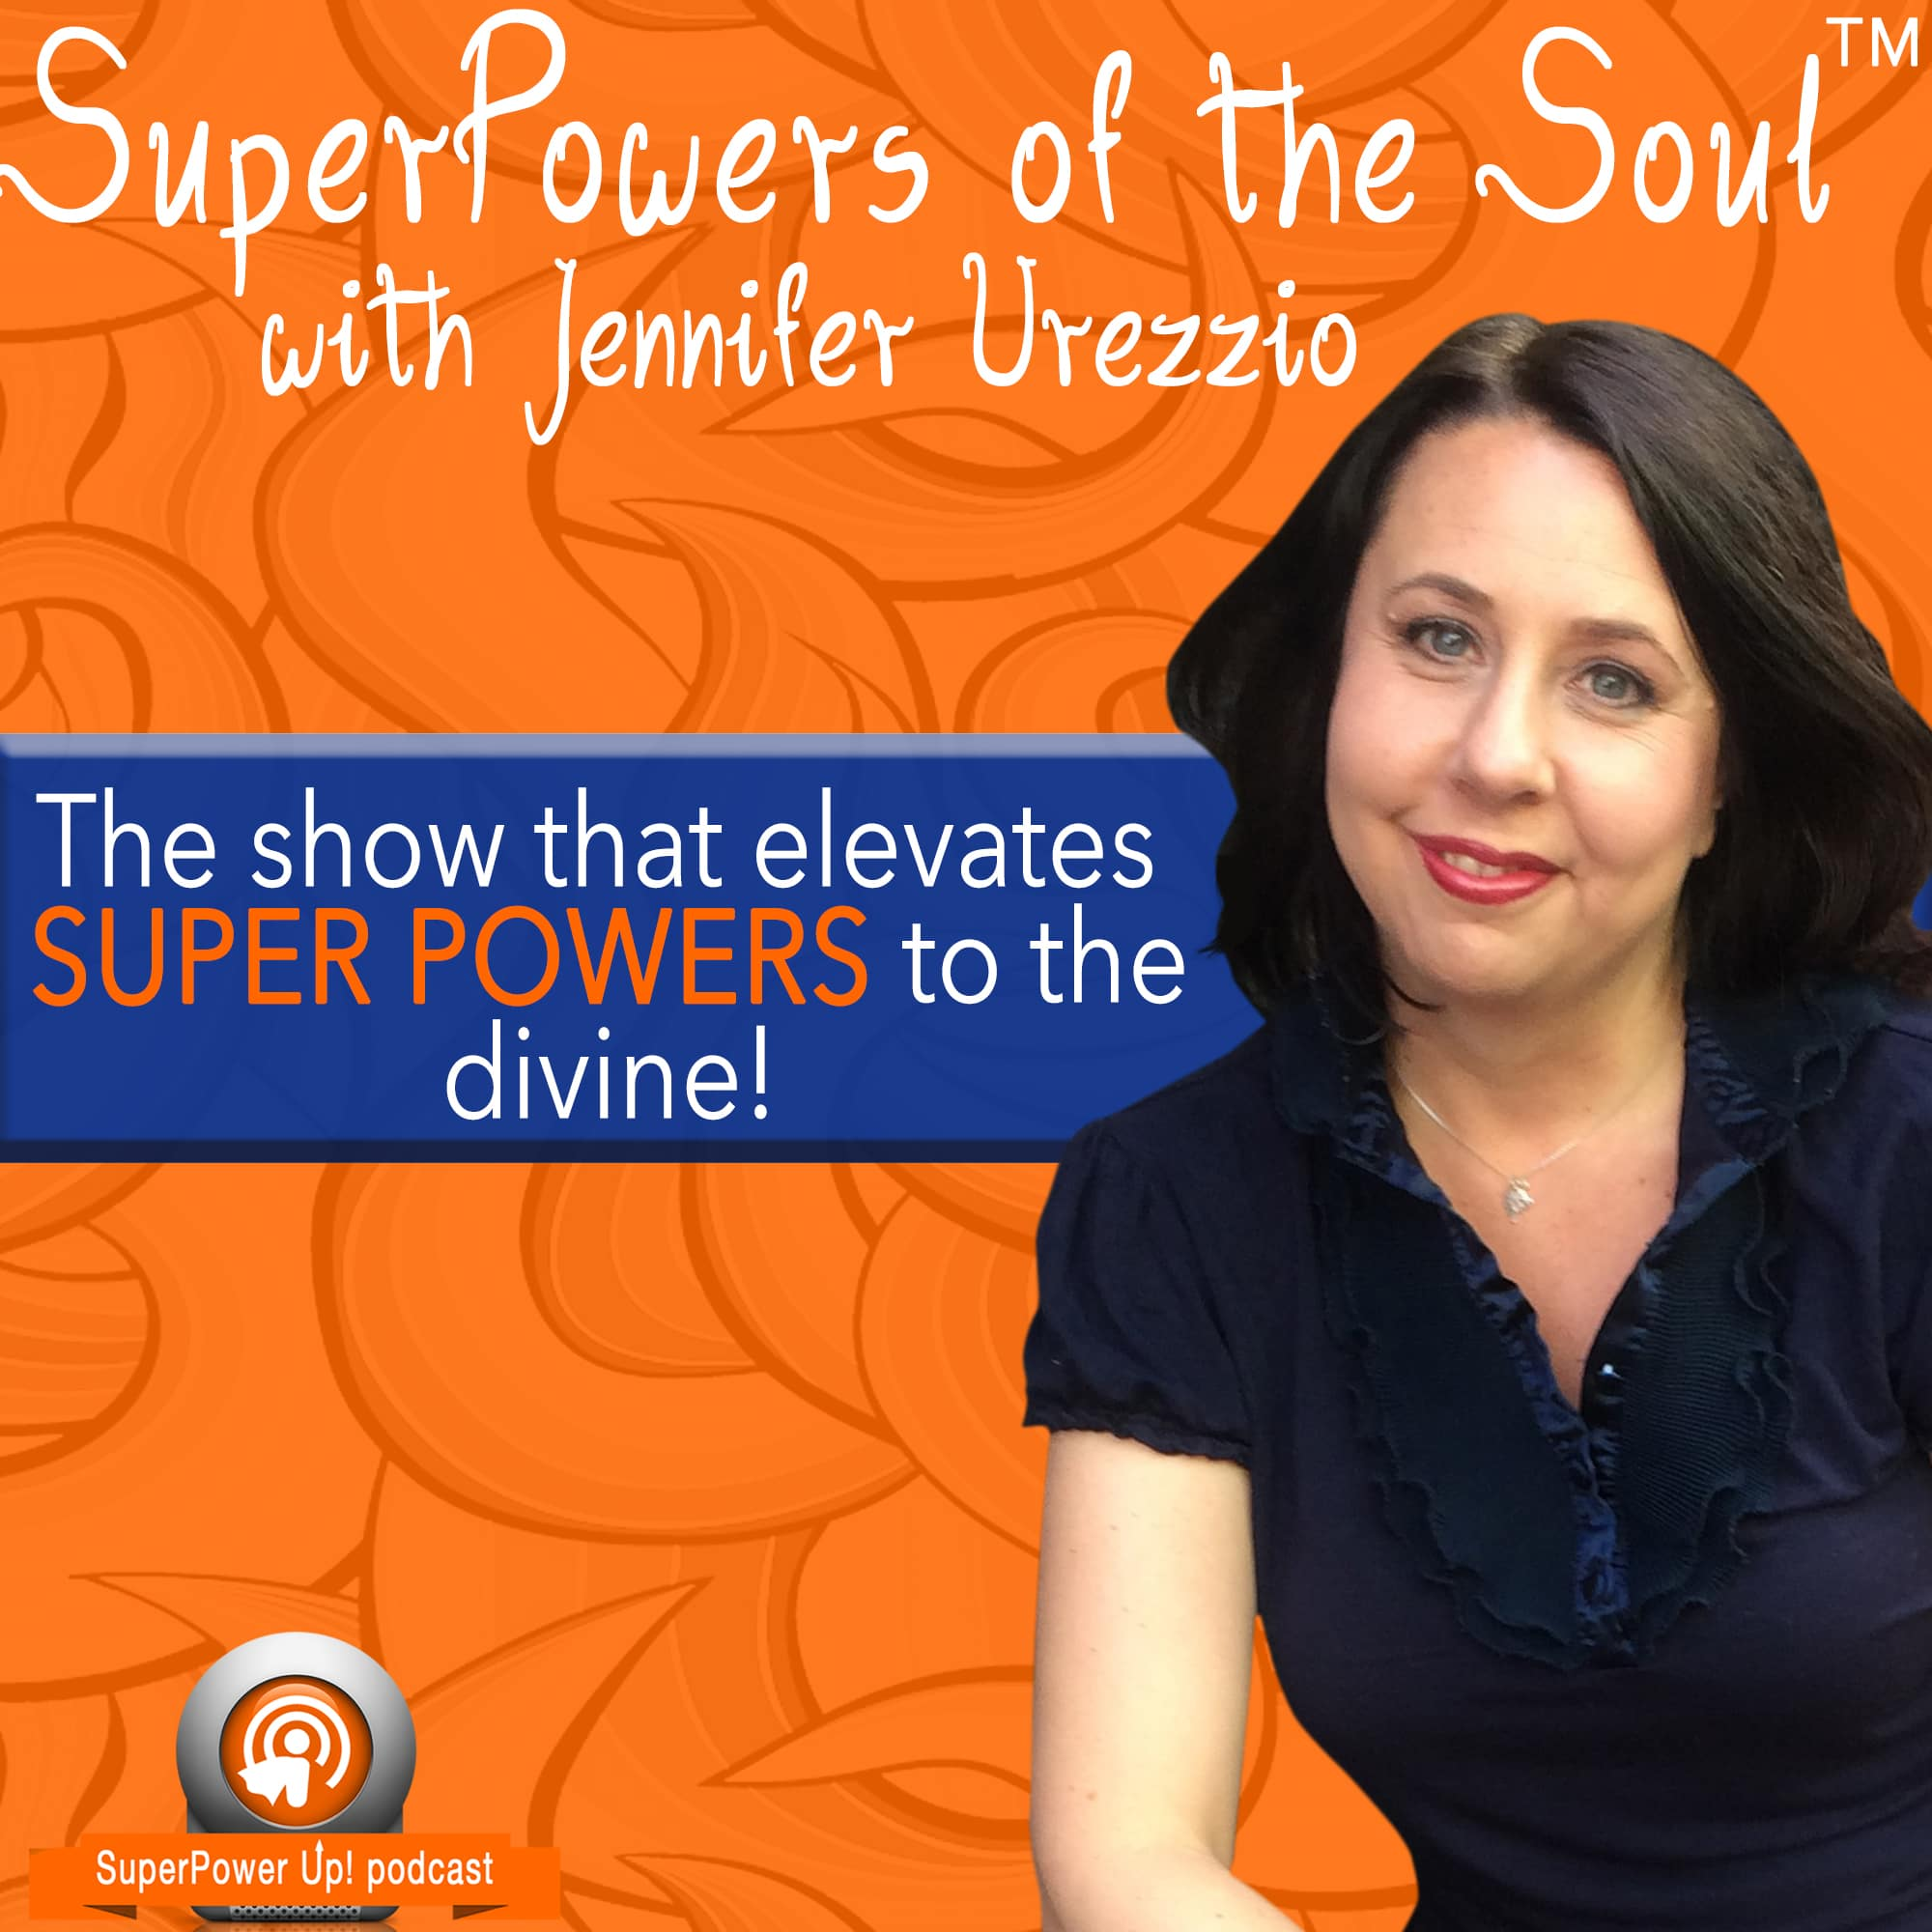 SuperPowers of the Soul